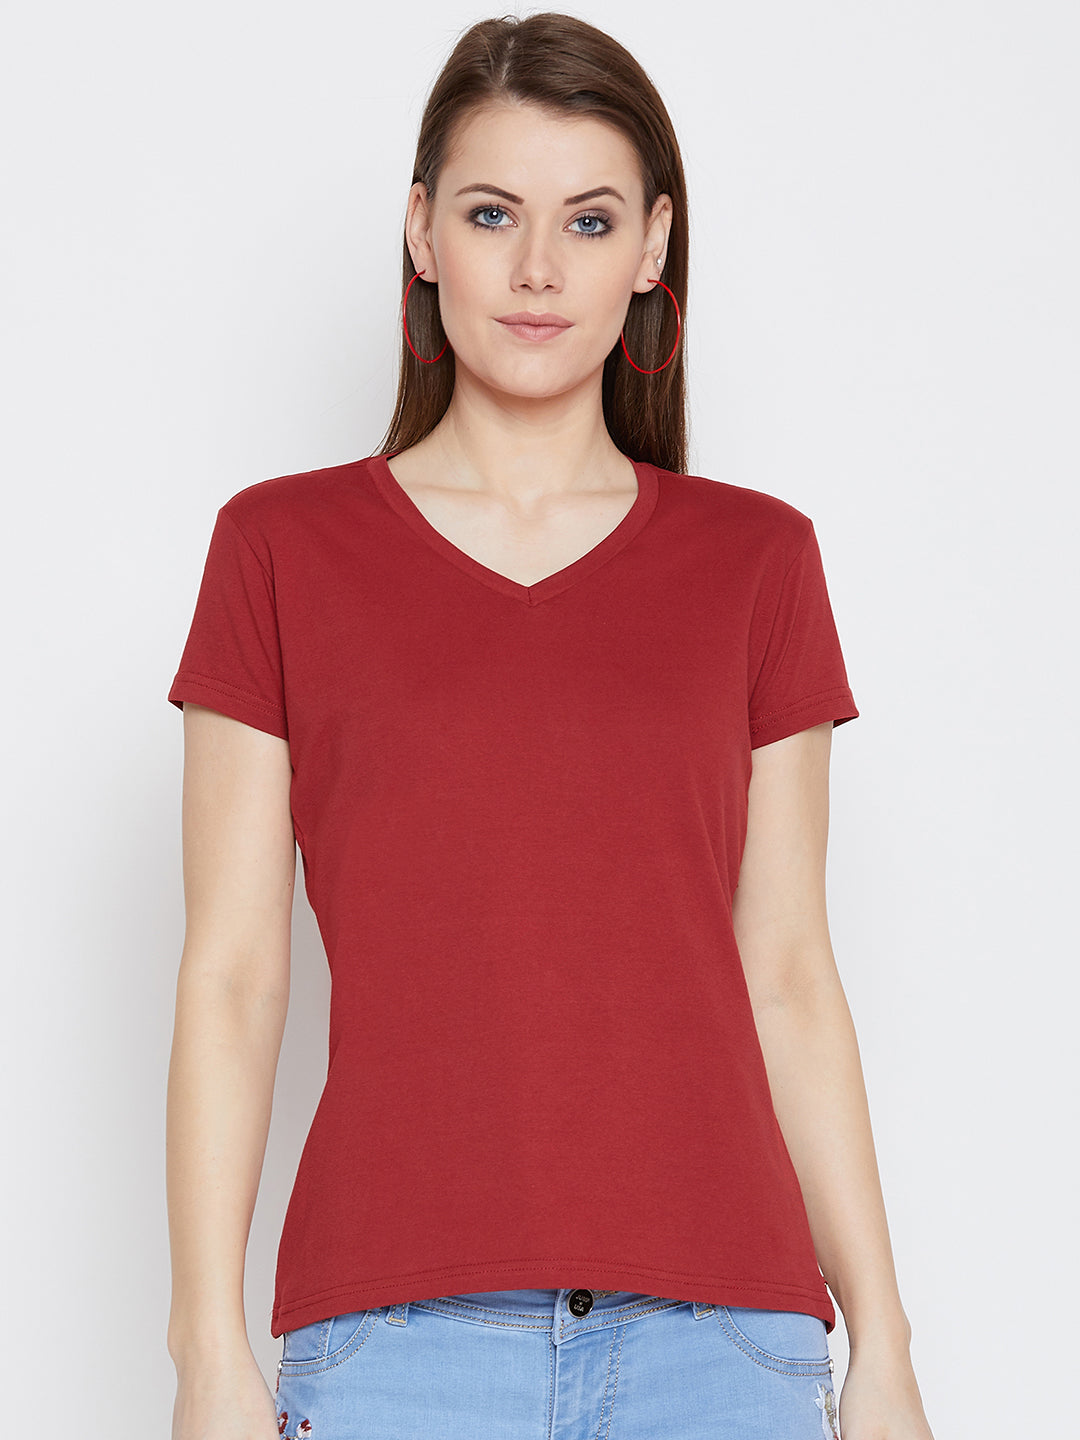 JUMP USA Women Red Cotton Solid Casual V-Neck Neck Tshirt